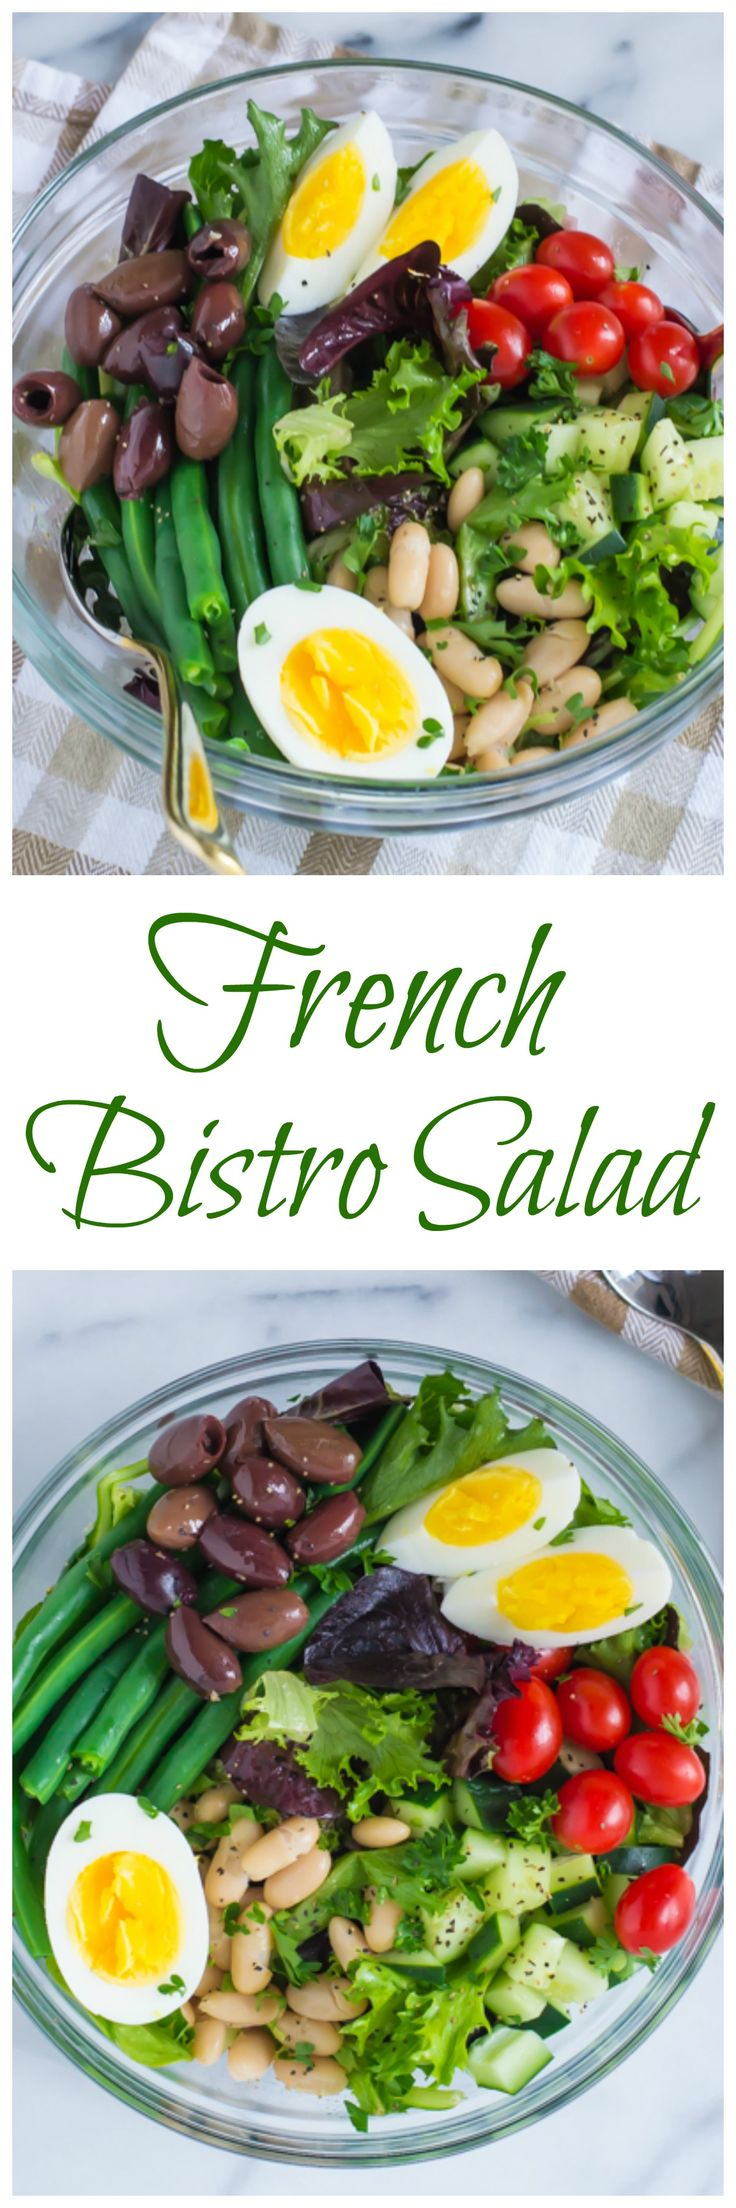 French Bistro Salad — An easy version of the classic French Nicoise salad that's served in Paris cafes. Fresh, filling, and anyone can make it! Recipe at wellplated.com @wellplated #lowcarb #glutenfree #vegetarian